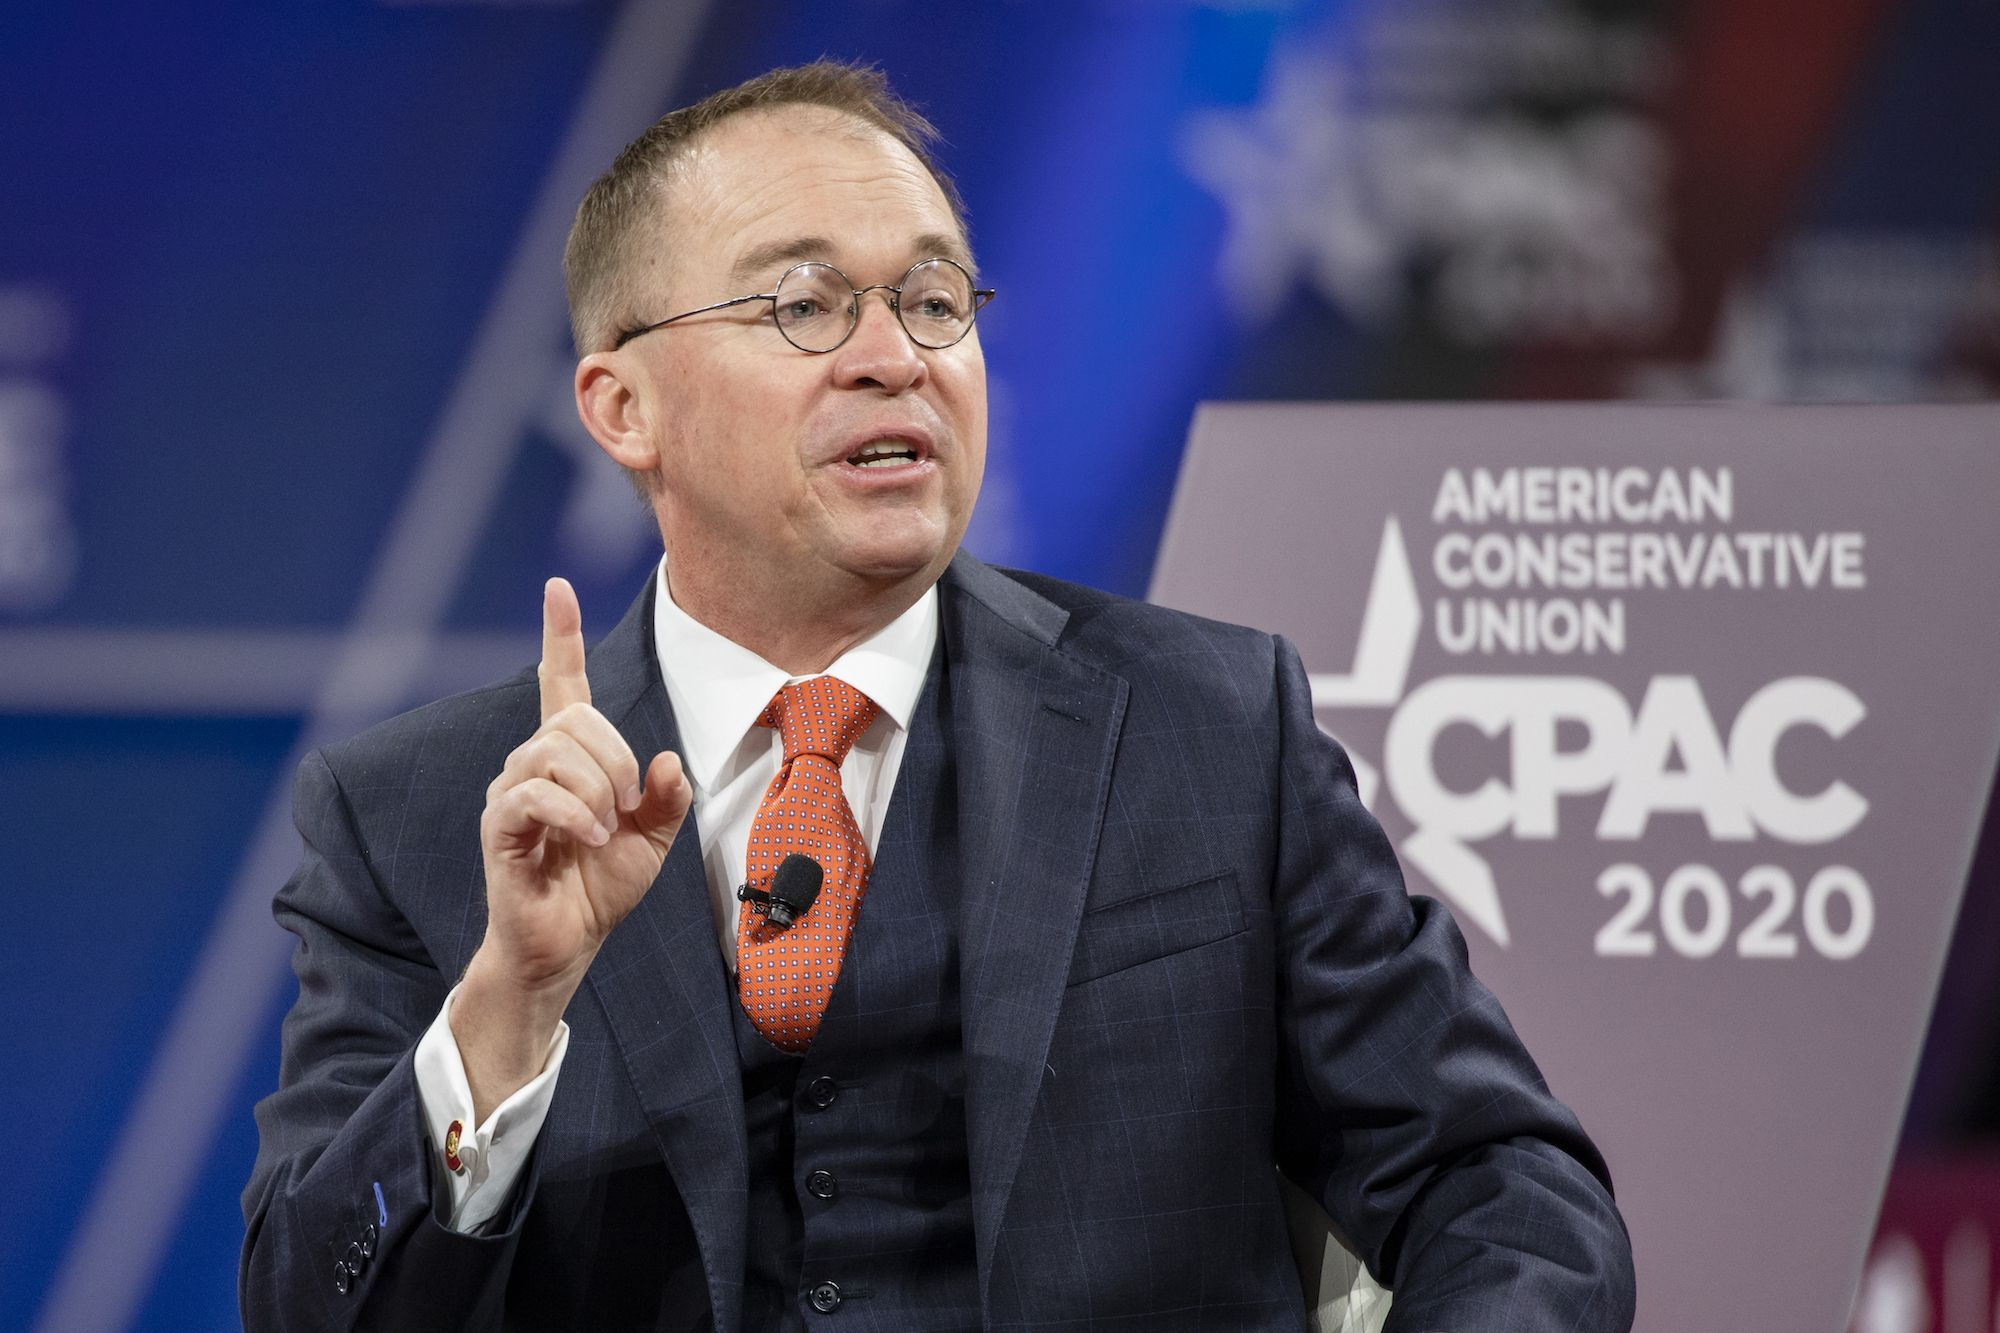 Mick Mulvaney Says Media Is Trying to 'Bring Down the President' With Coronavirus Coverage